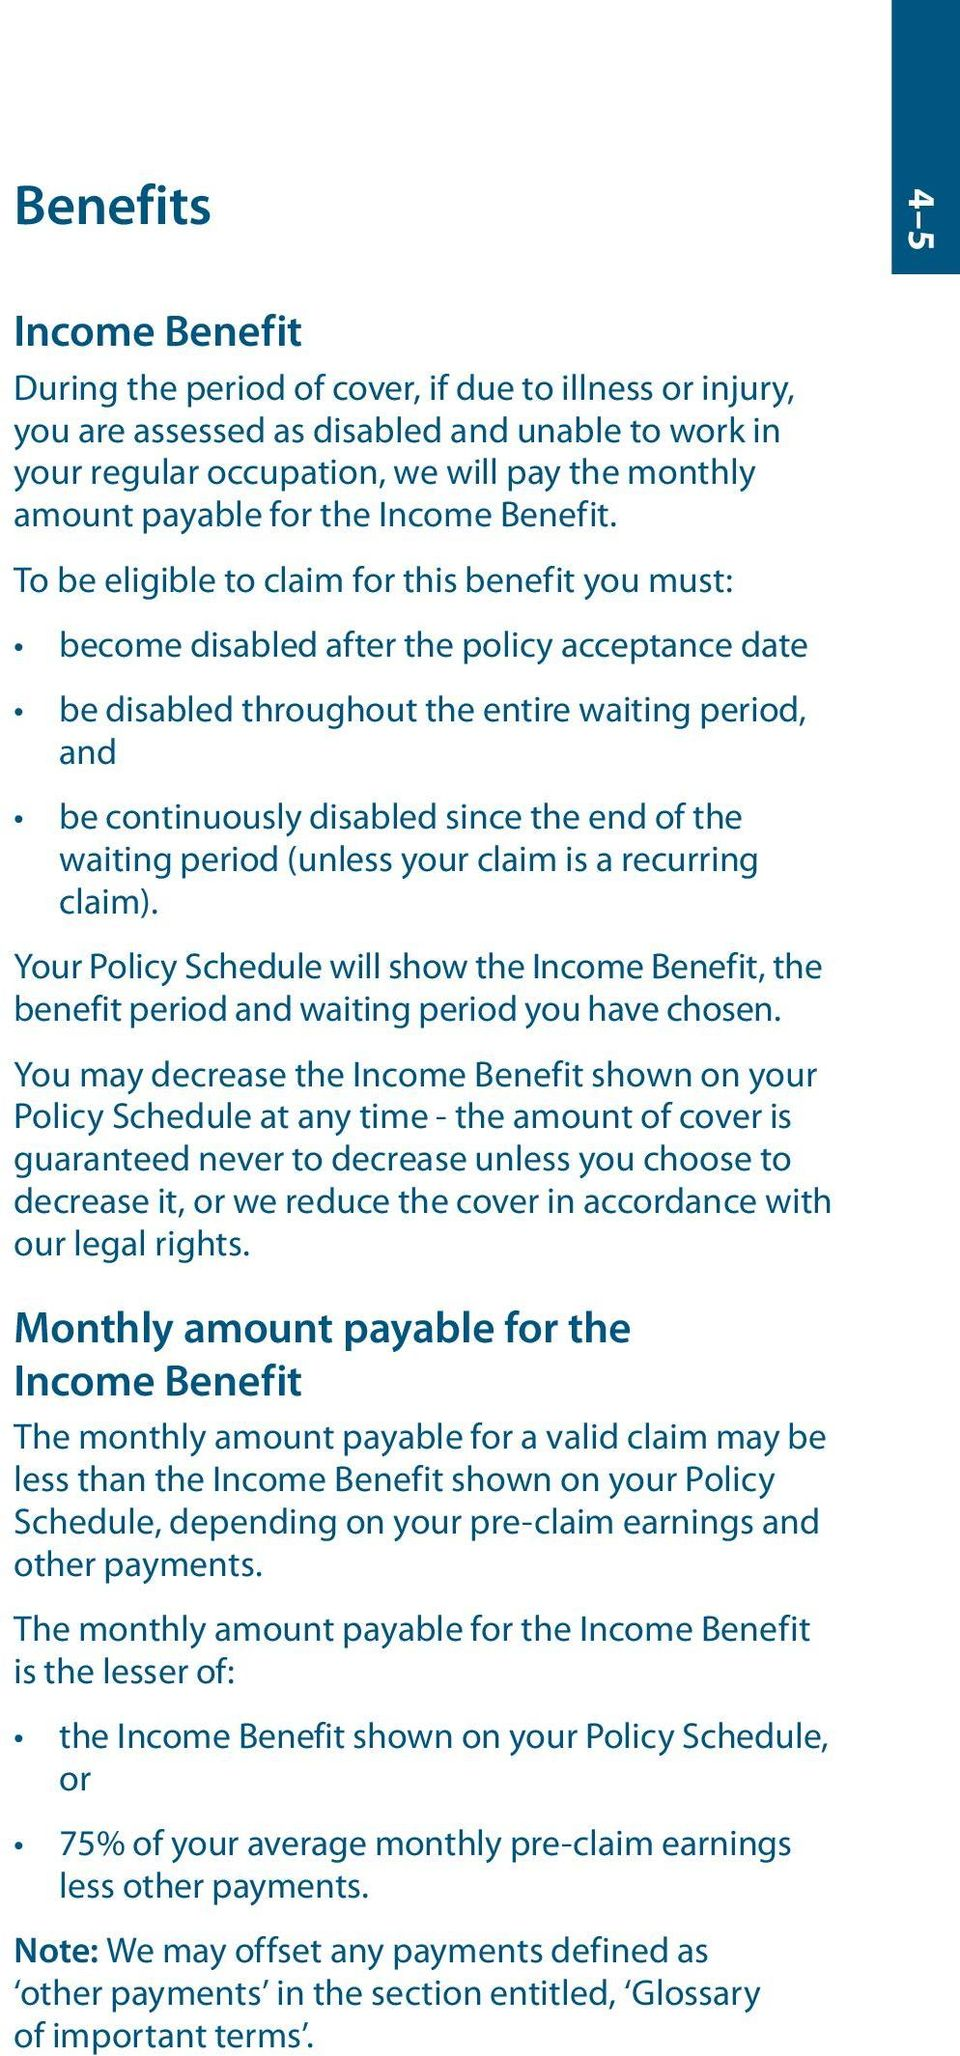 To be eligible to claim for this benefit you must: become disabled after the policy acceptance date be disabled throughout the entire waiting period, and be continuously disabled since the end of the